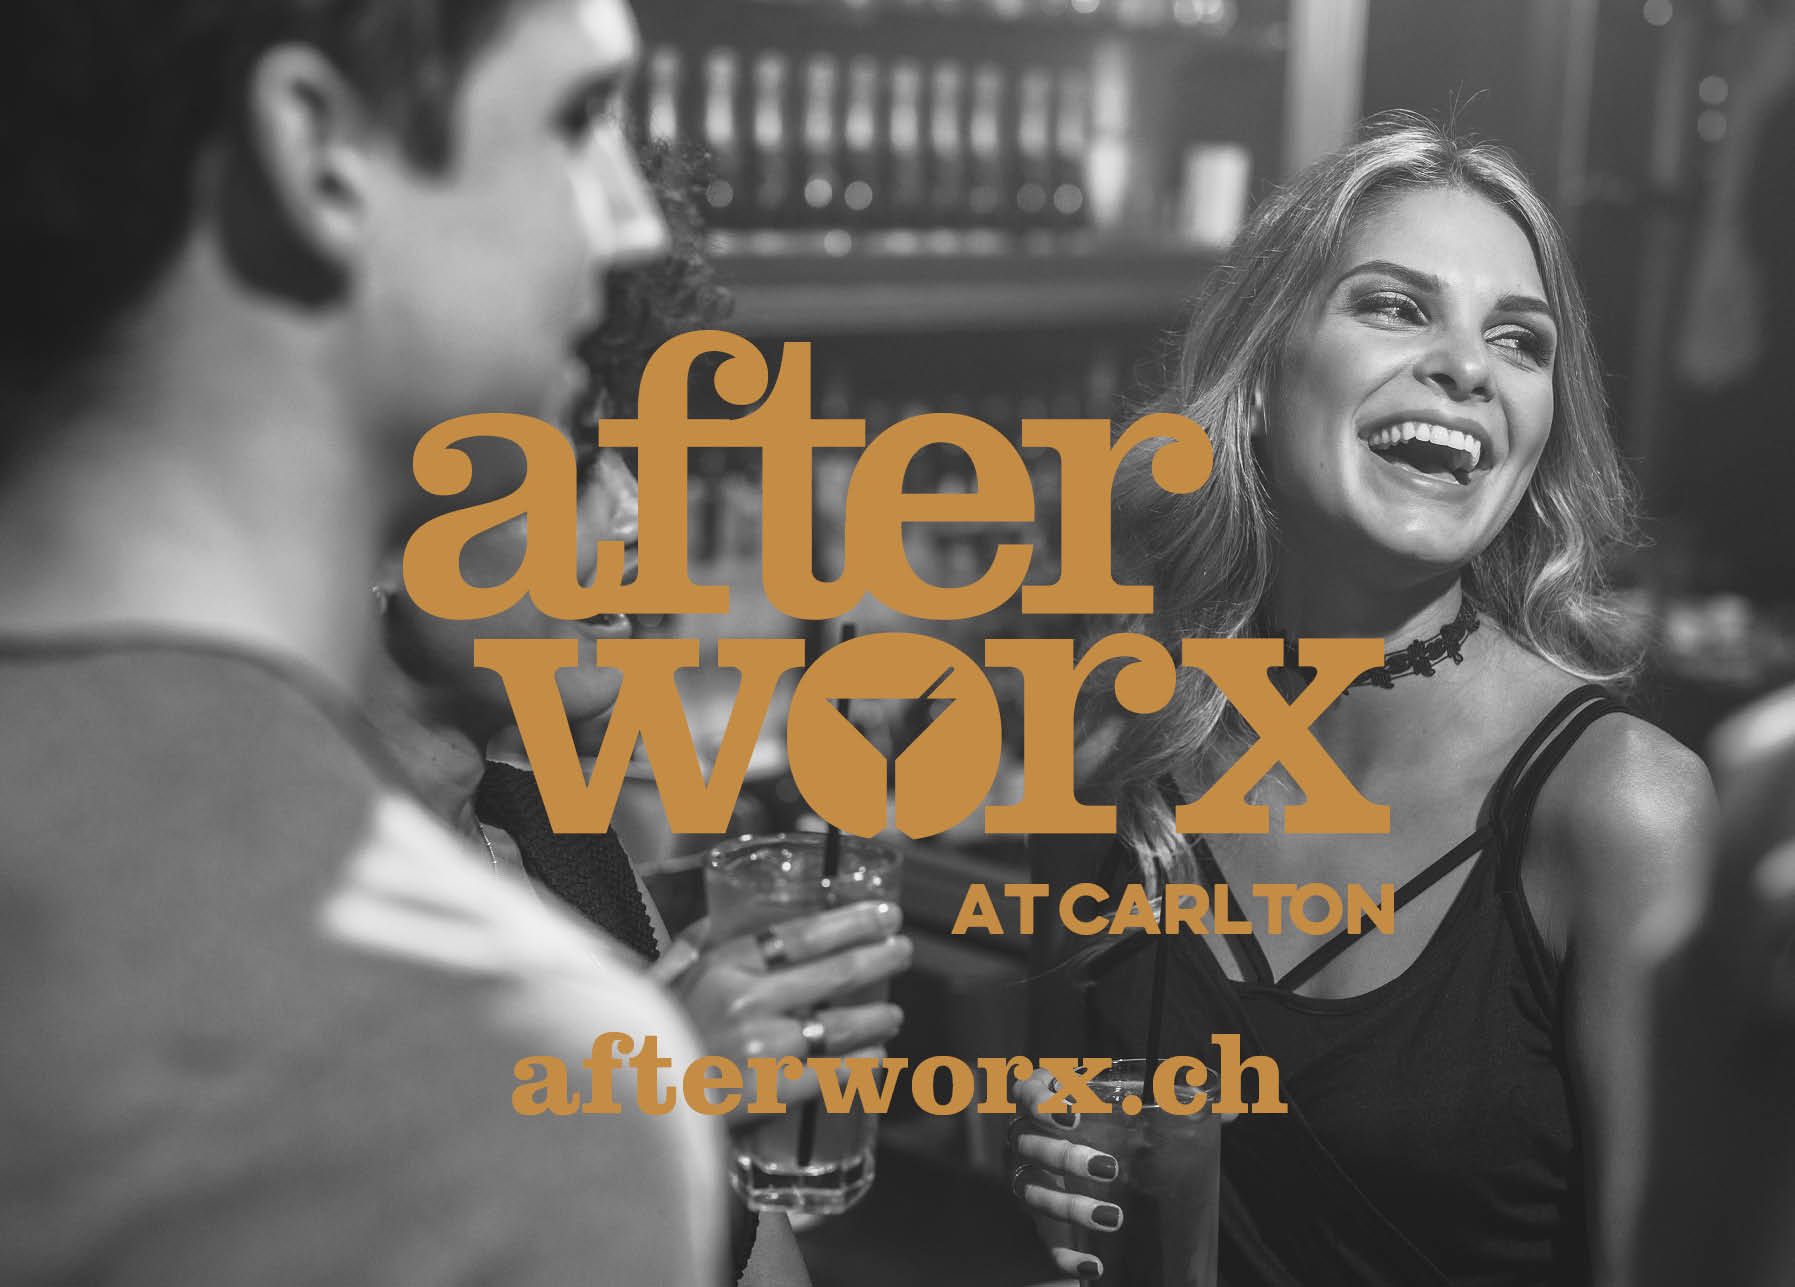 Afterworx at Carlton